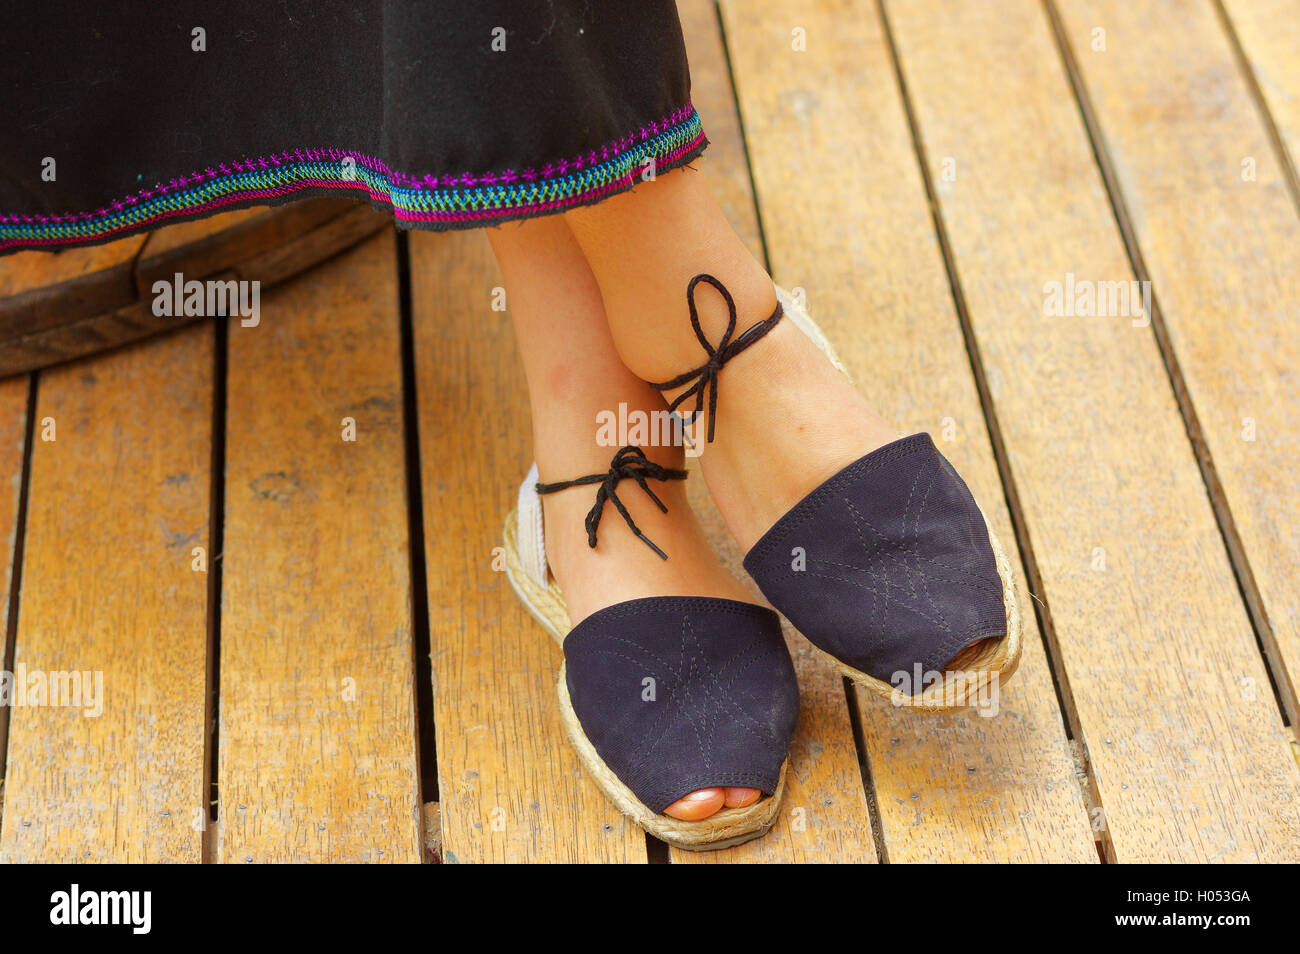 ce7b11ecf8529 Traditional Bolivian Shoes Stock Photos   Traditional Bolivian Shoes ...